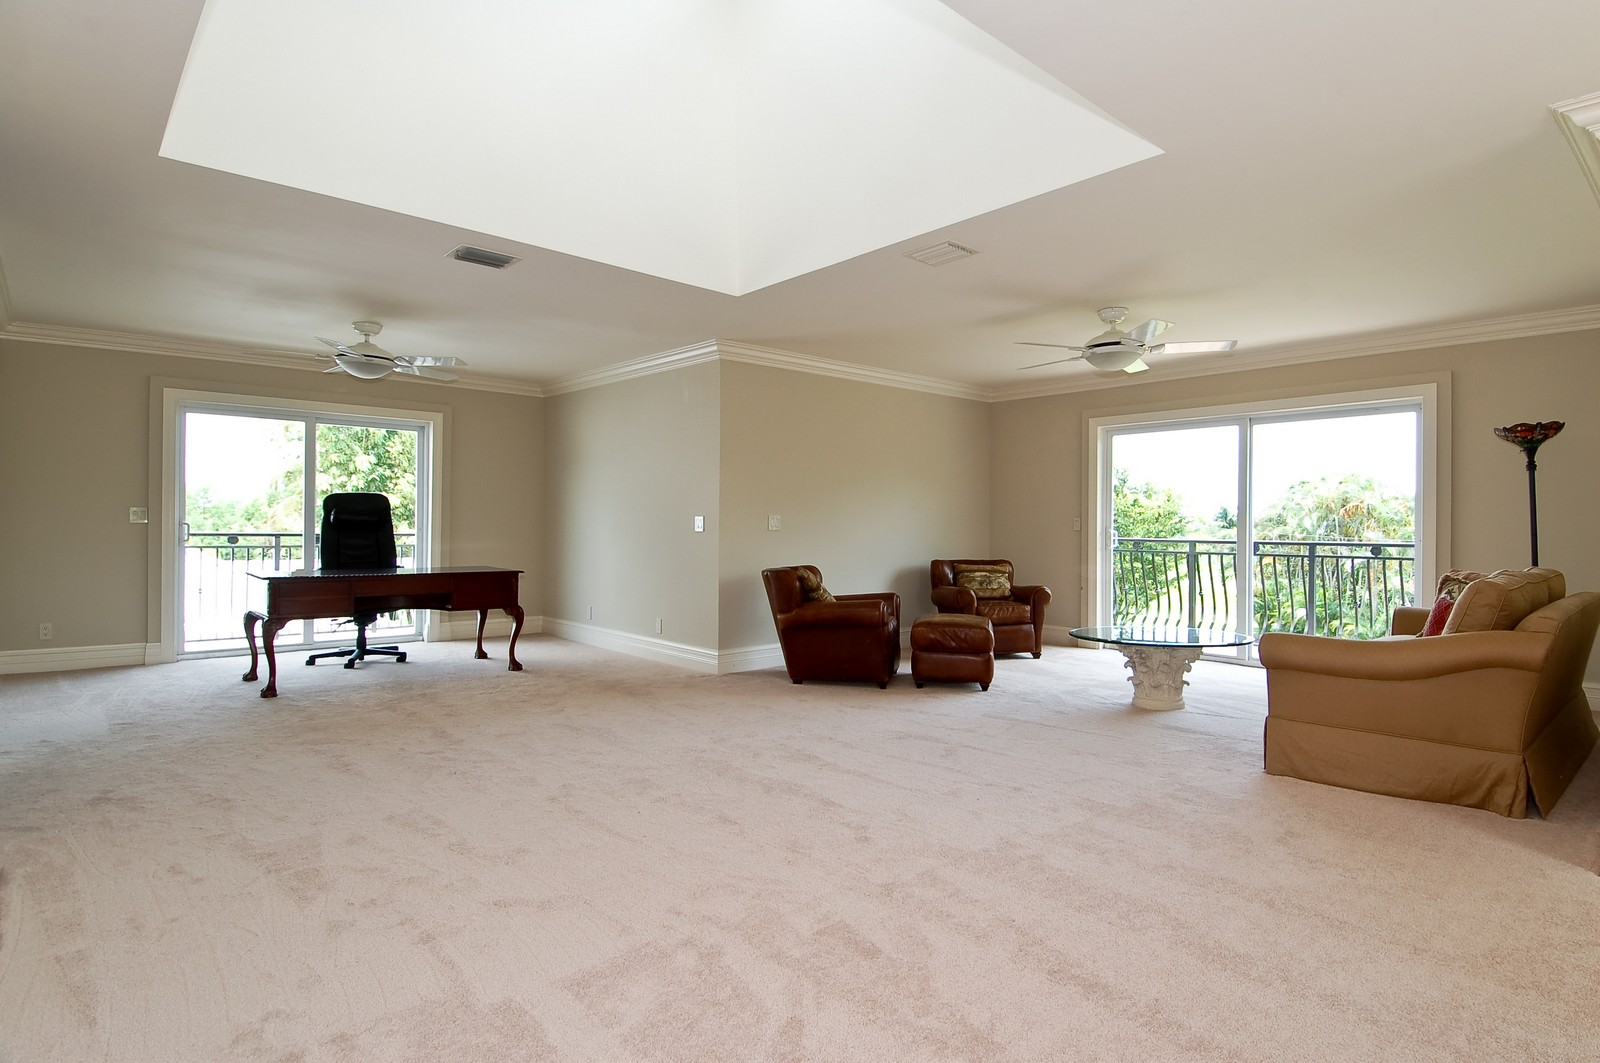 Real Estate Photography - 12800 SW 33RD DRIVE, DAVIE, FL, 33330 - 2nd Floor